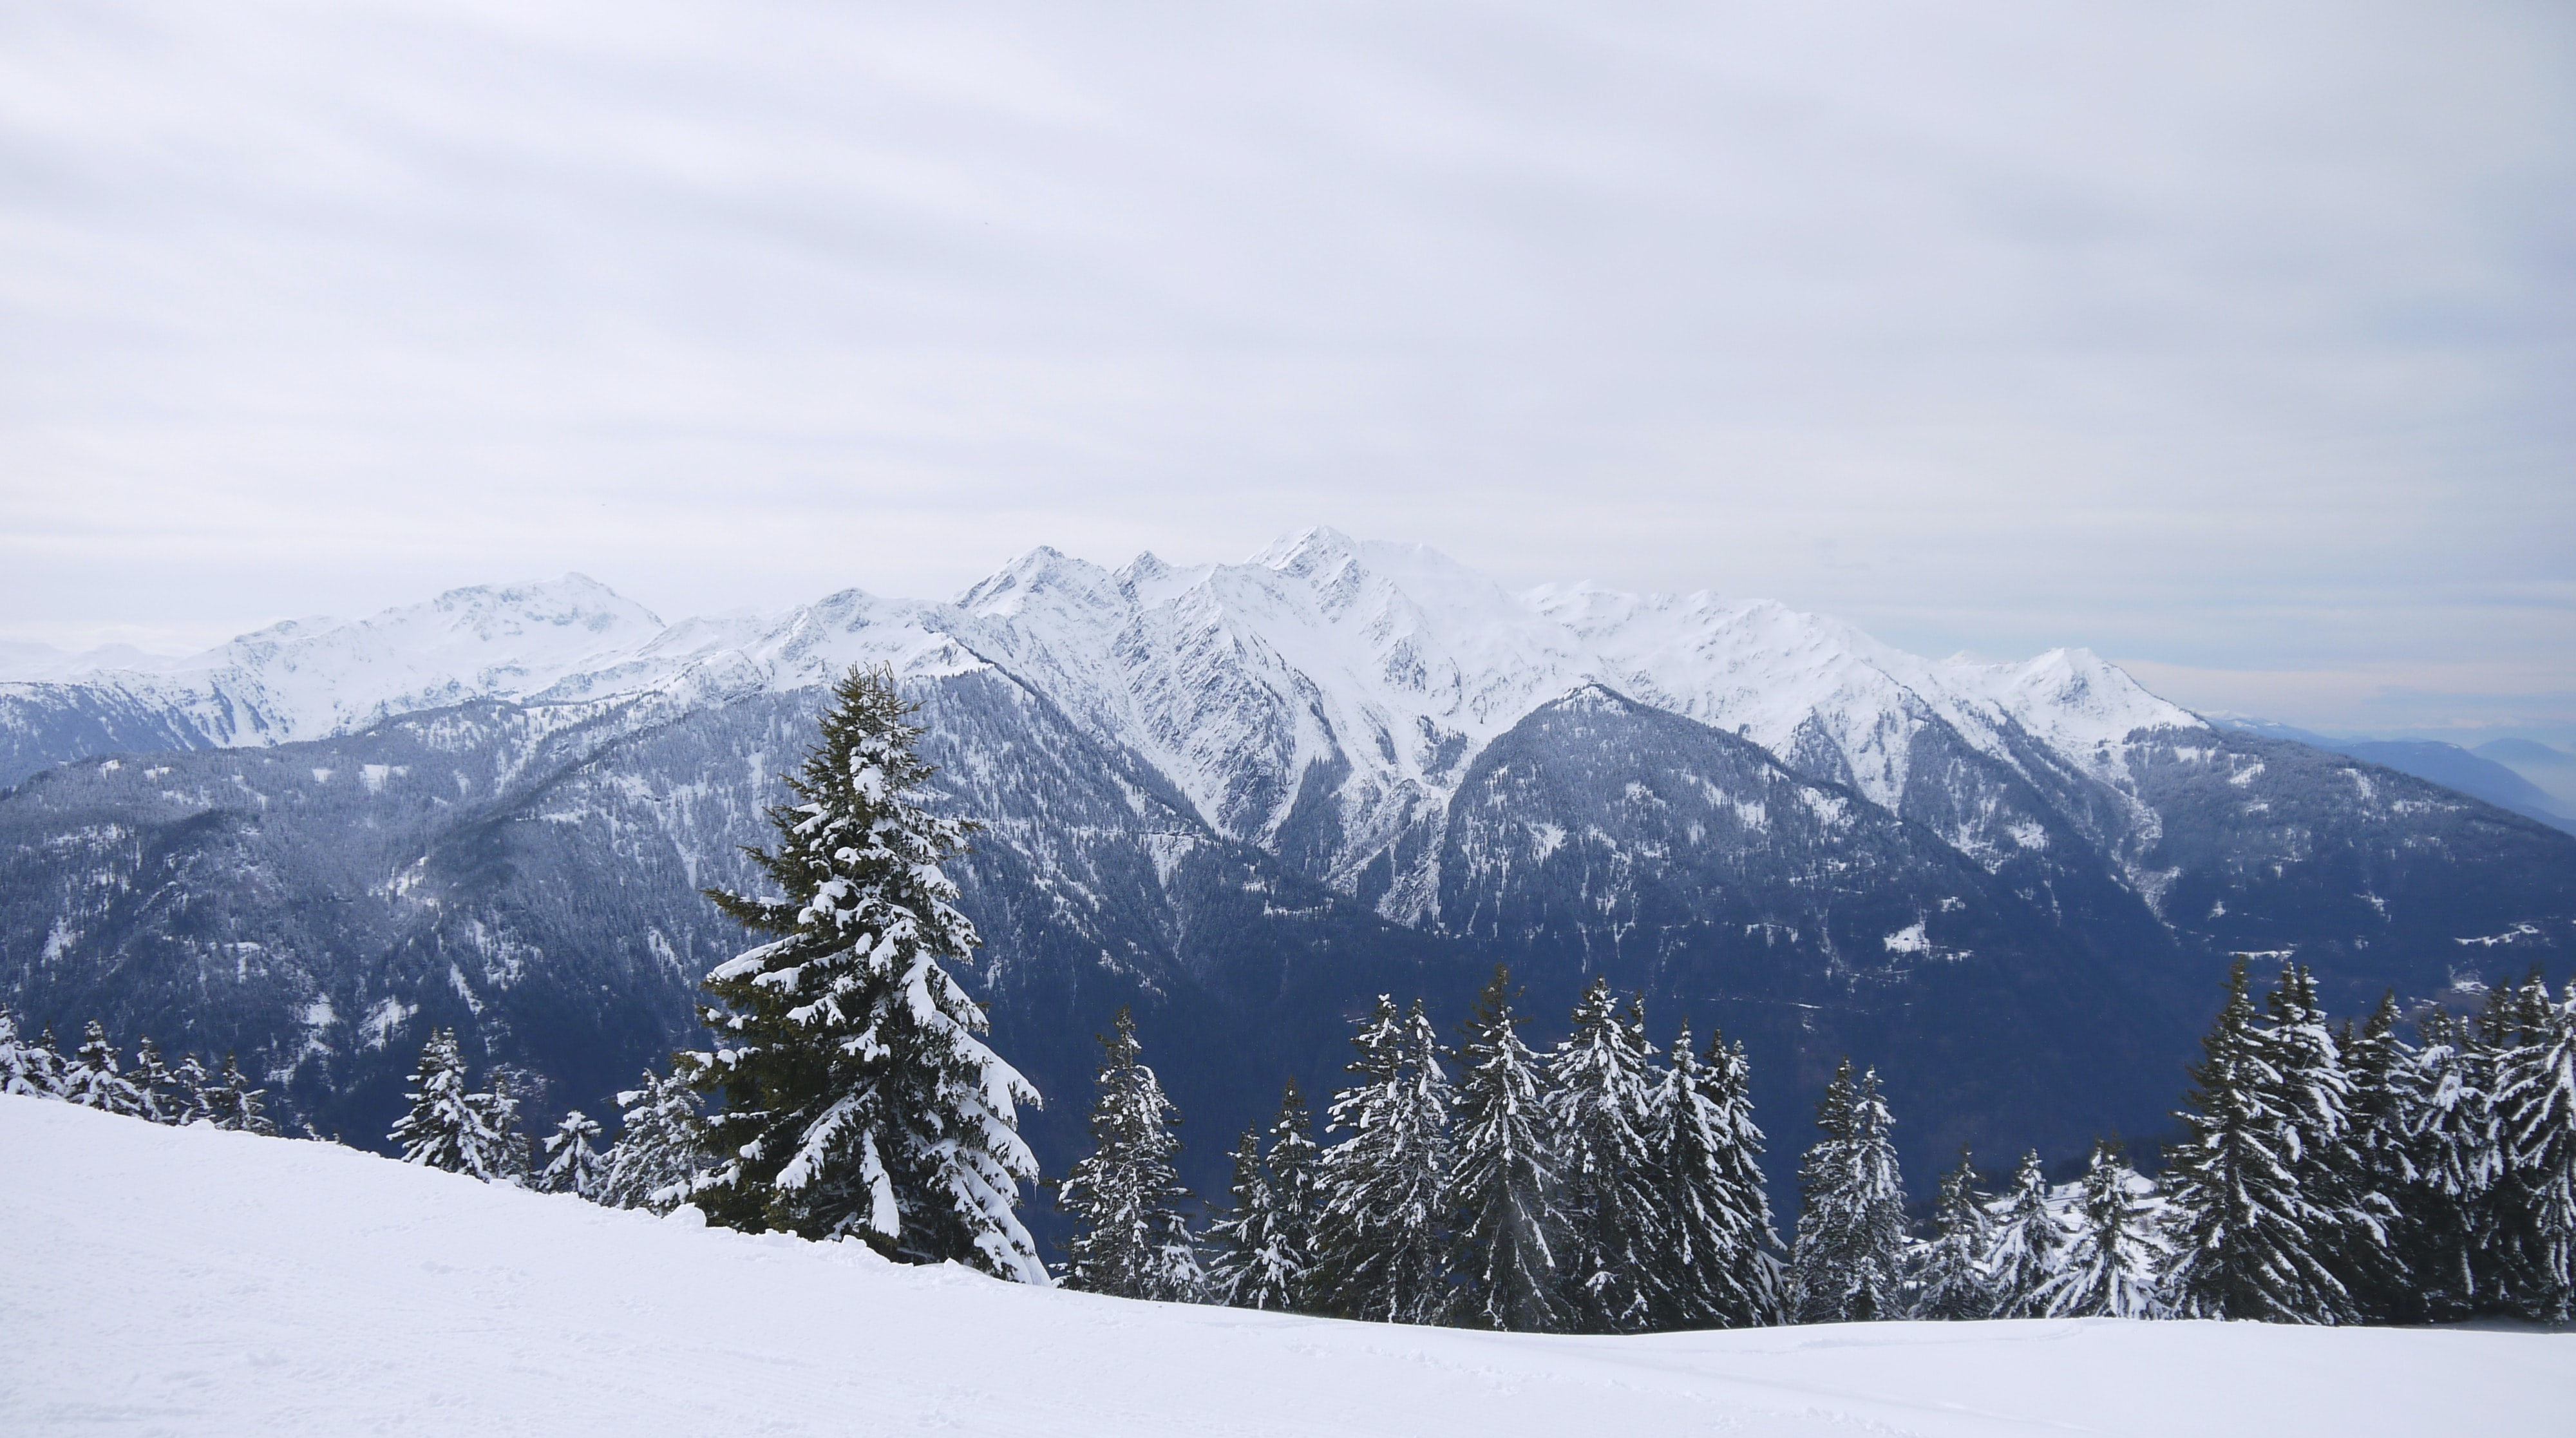 snowy forest and mountains under cloudy sky during daytime